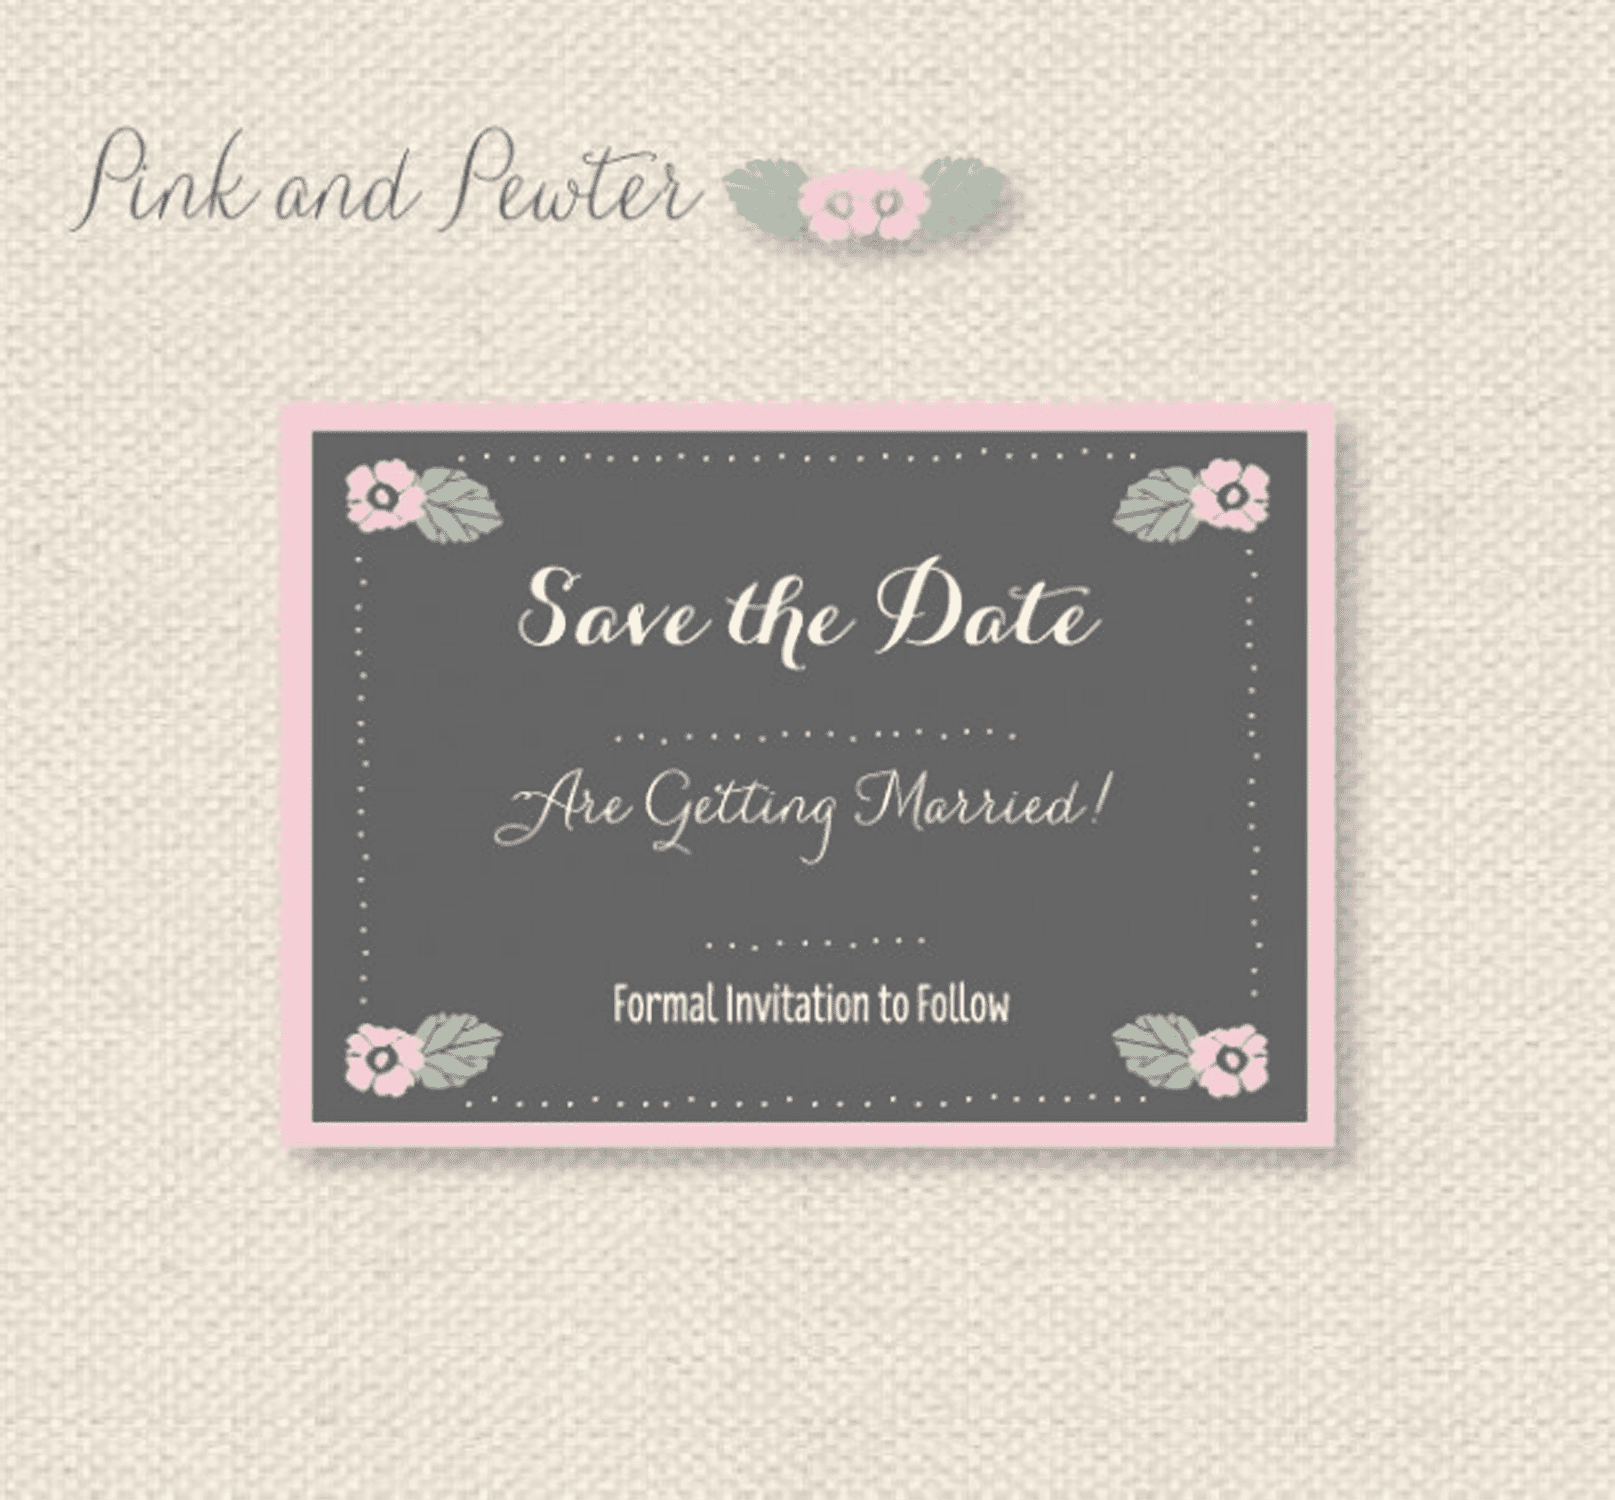 Free Save The Date Templates - Save the date blank template